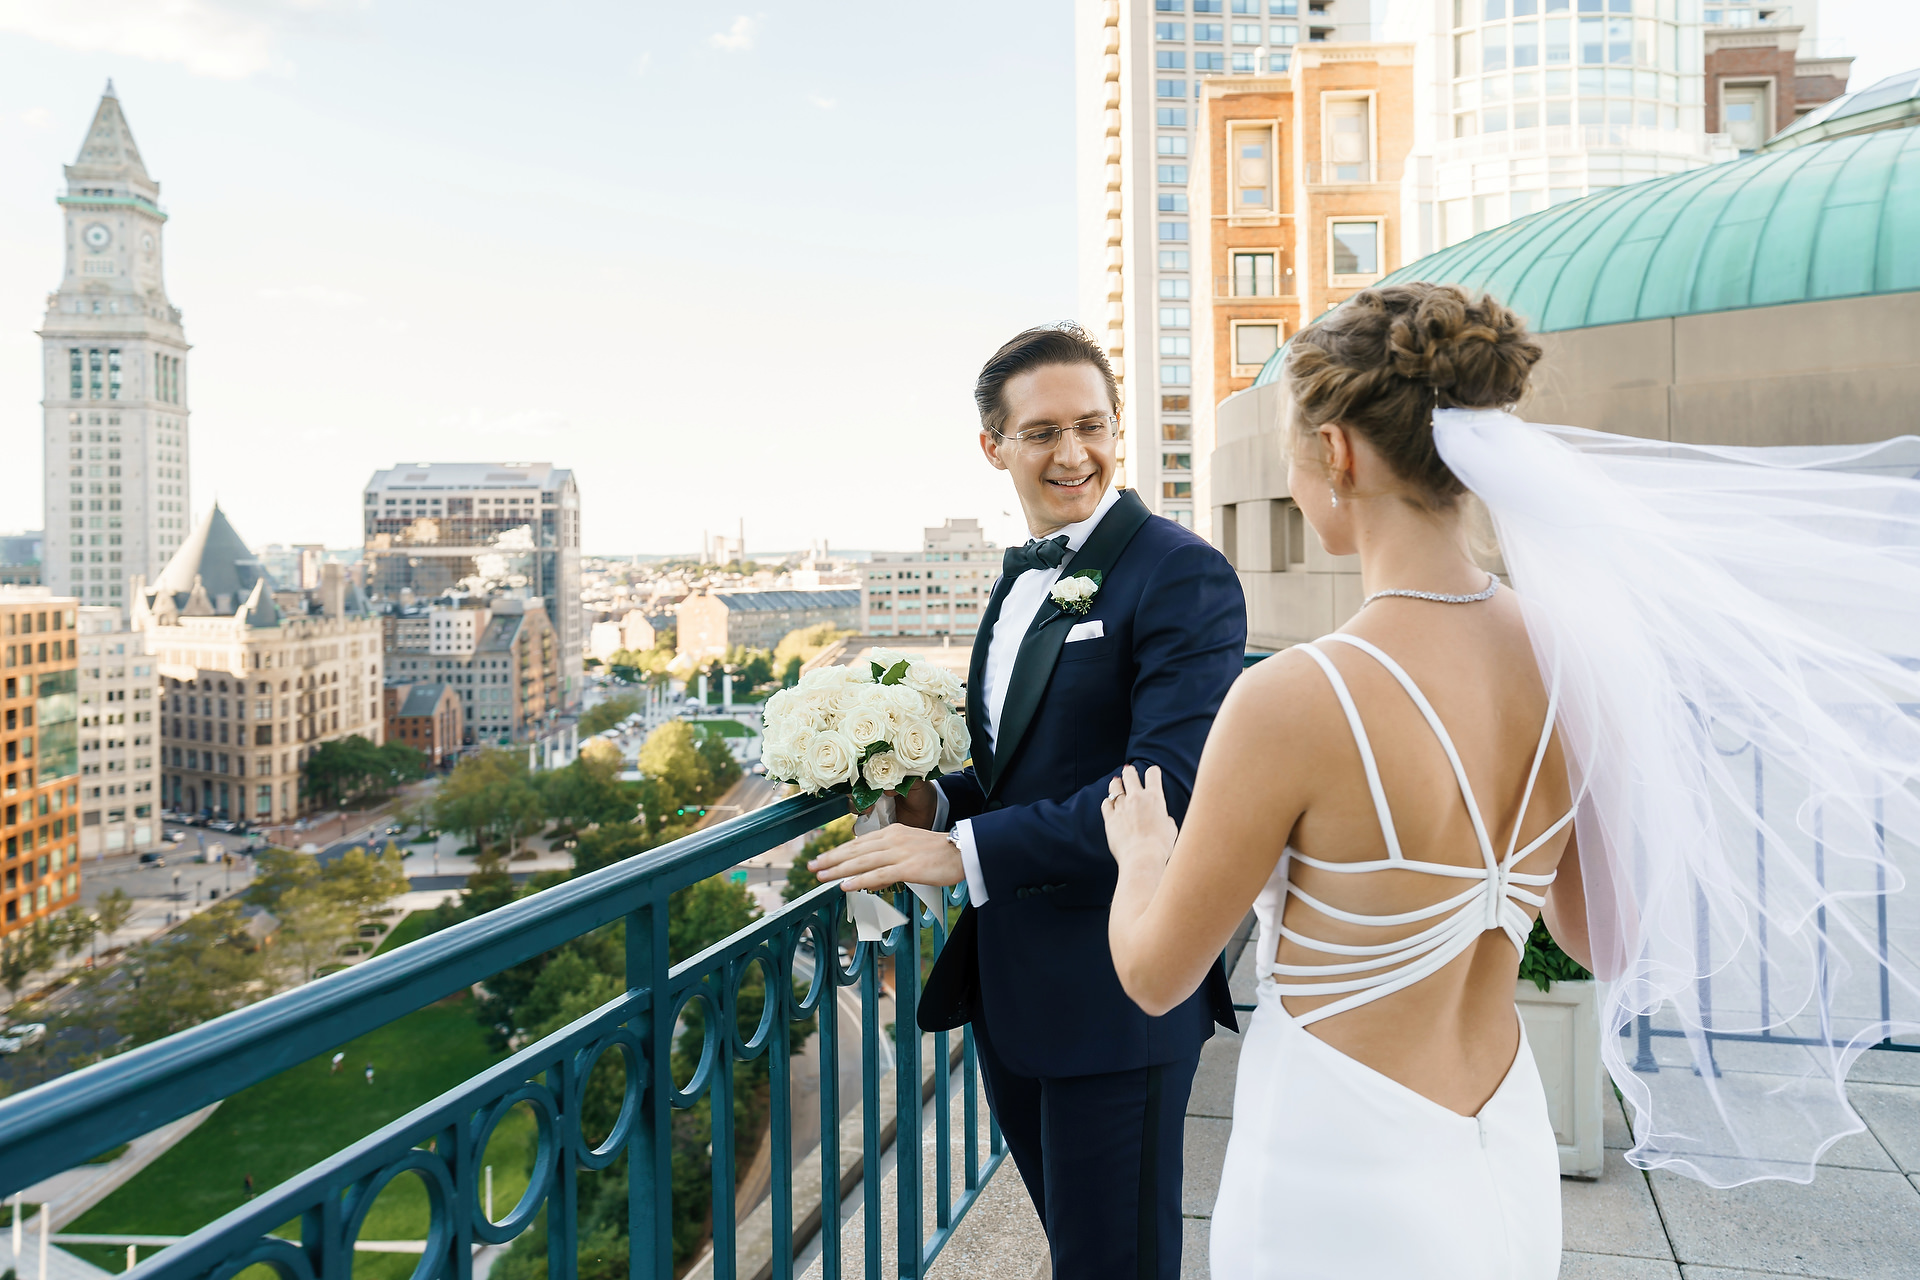 Boston Harbor Hotel Wedding Photographers | an intimate moment together before the ceremony